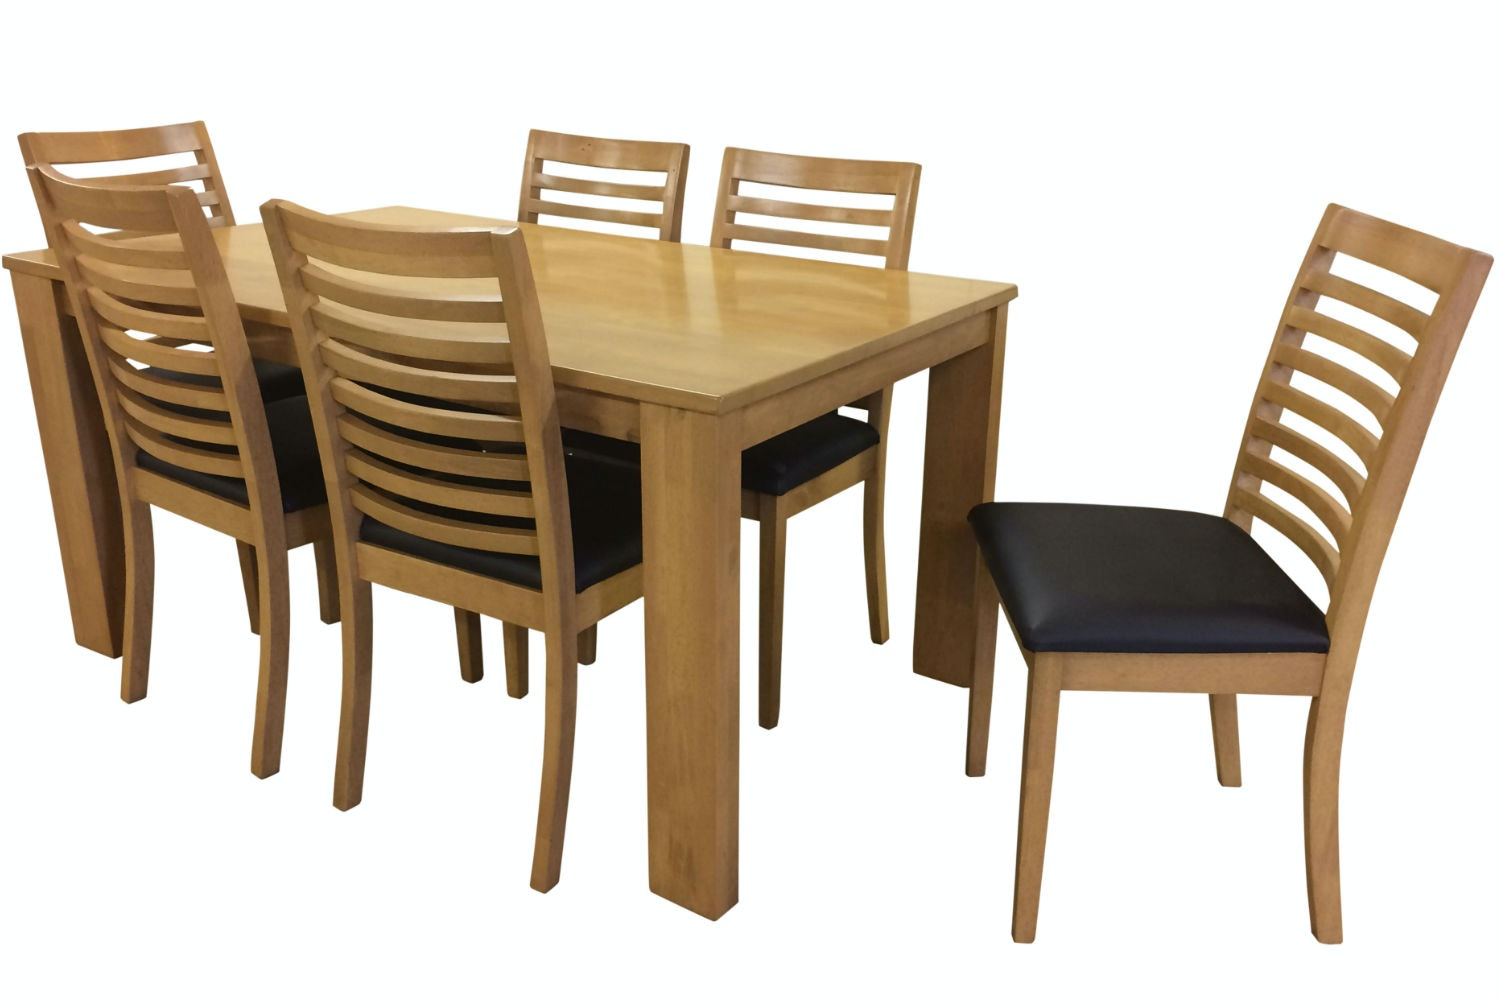 togo-7-piece-dining-set